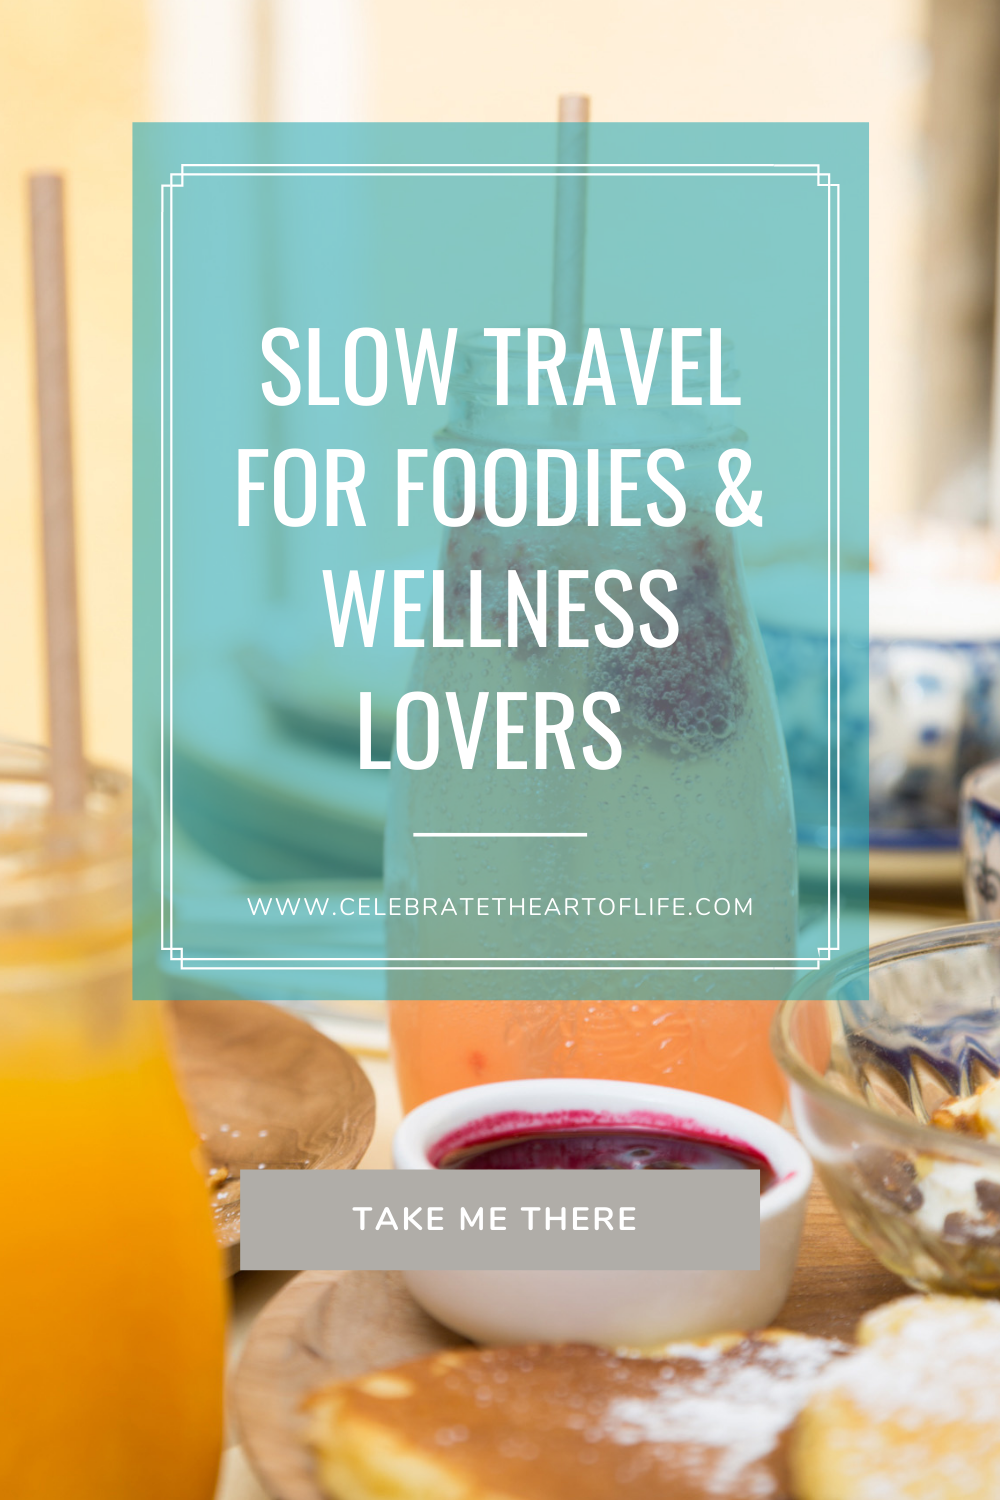 Slow Travel for Foodies and Wellness Lovers